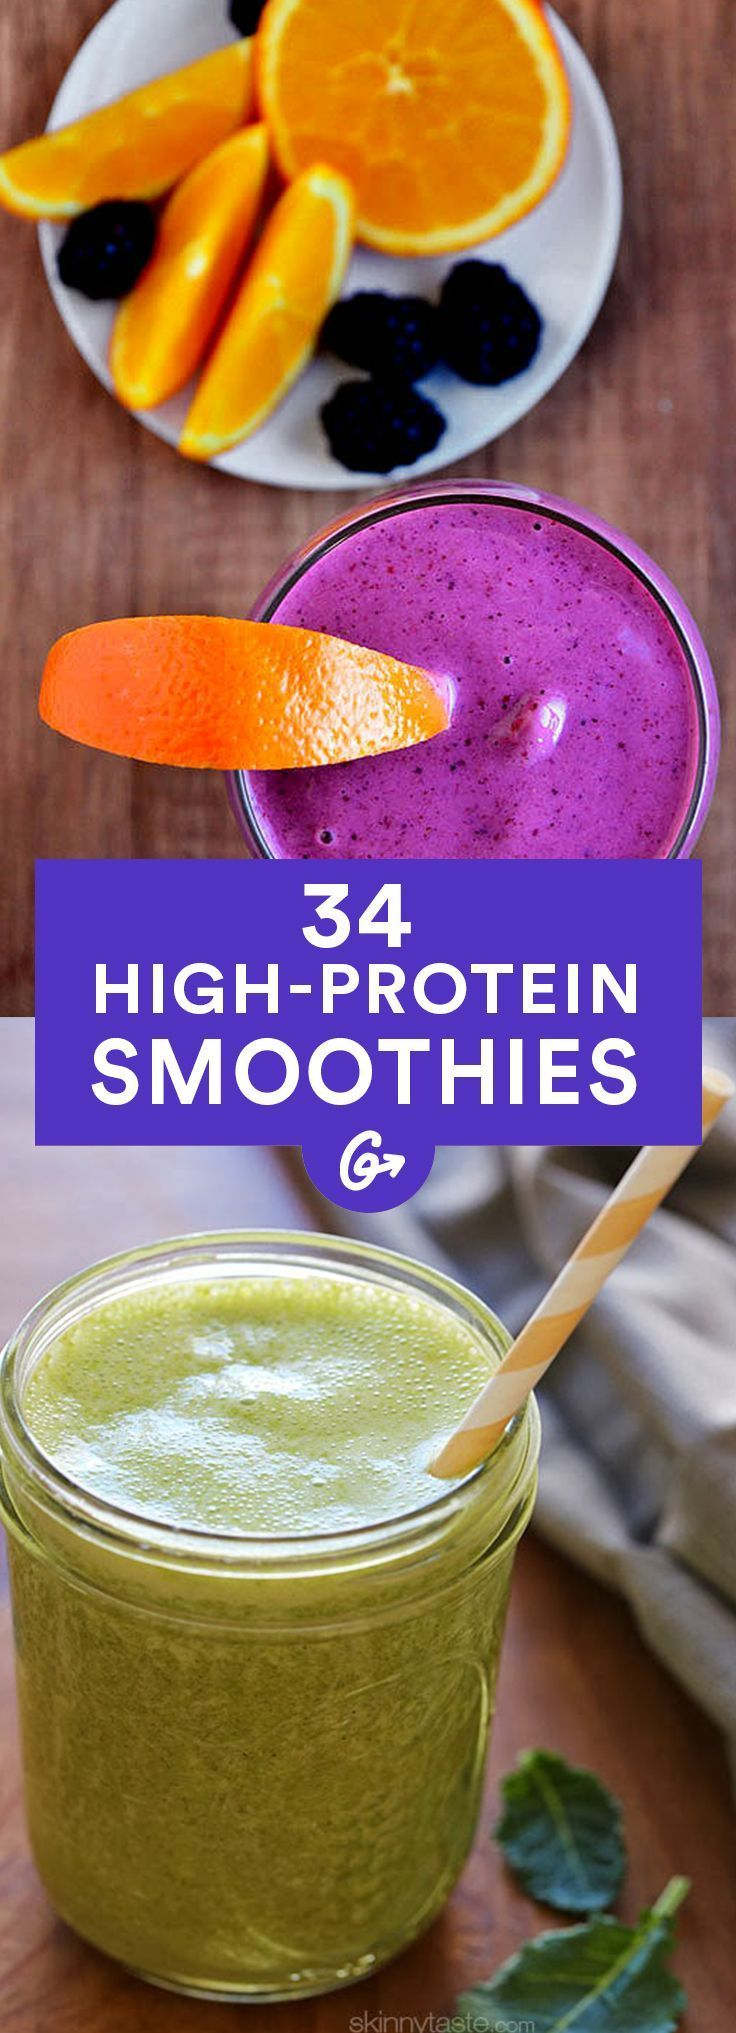 Protein up! http://greatist.com/eat/high-protein-smoothie-recipes                                                                                                                                                      More